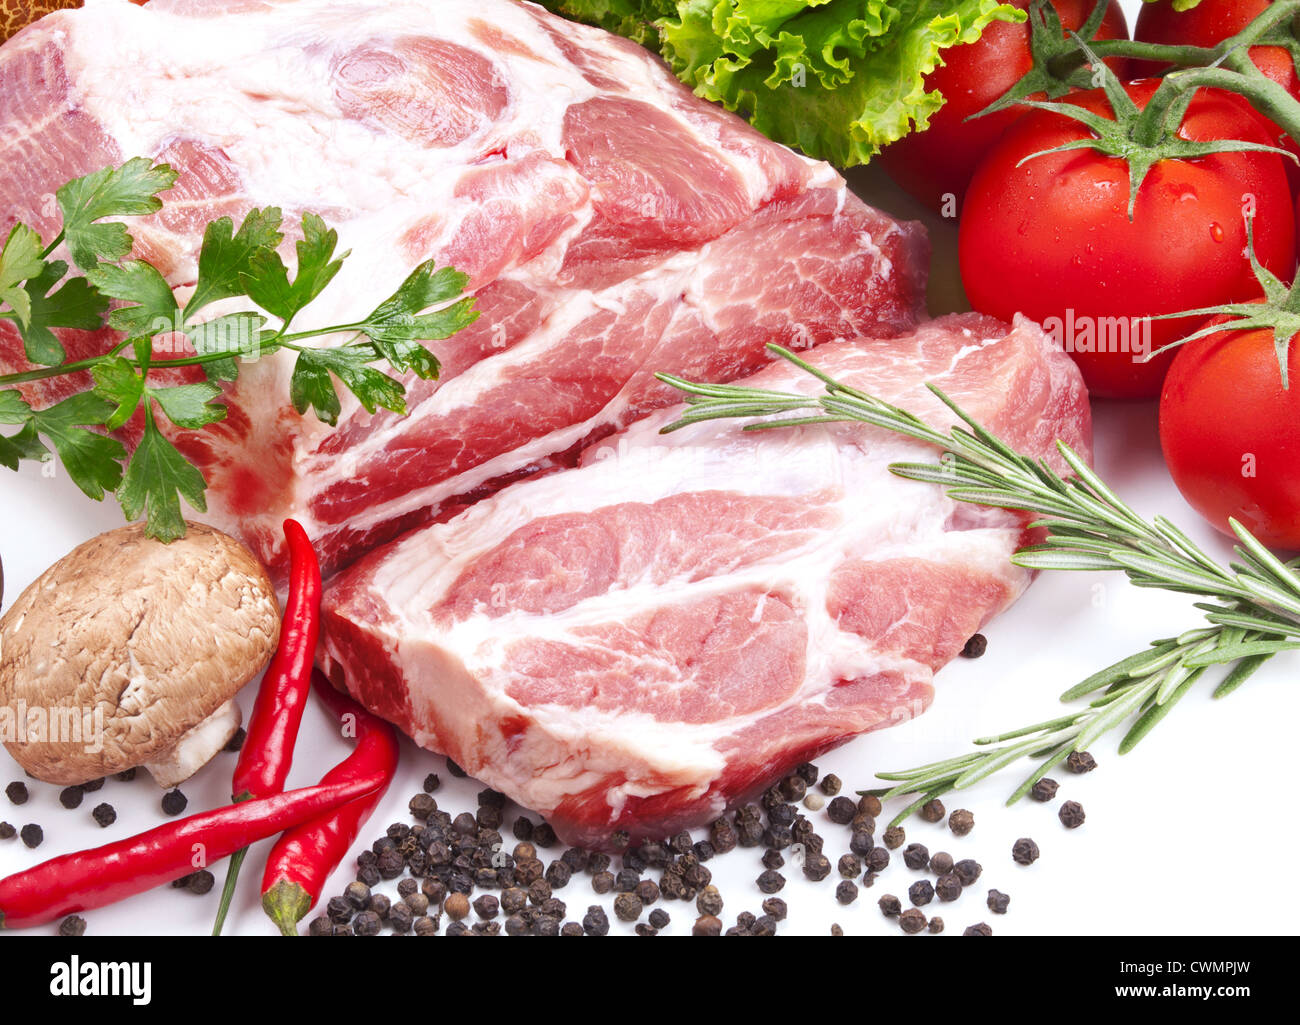 Still life with raw pork meat and fresh vegetables Stock Photo